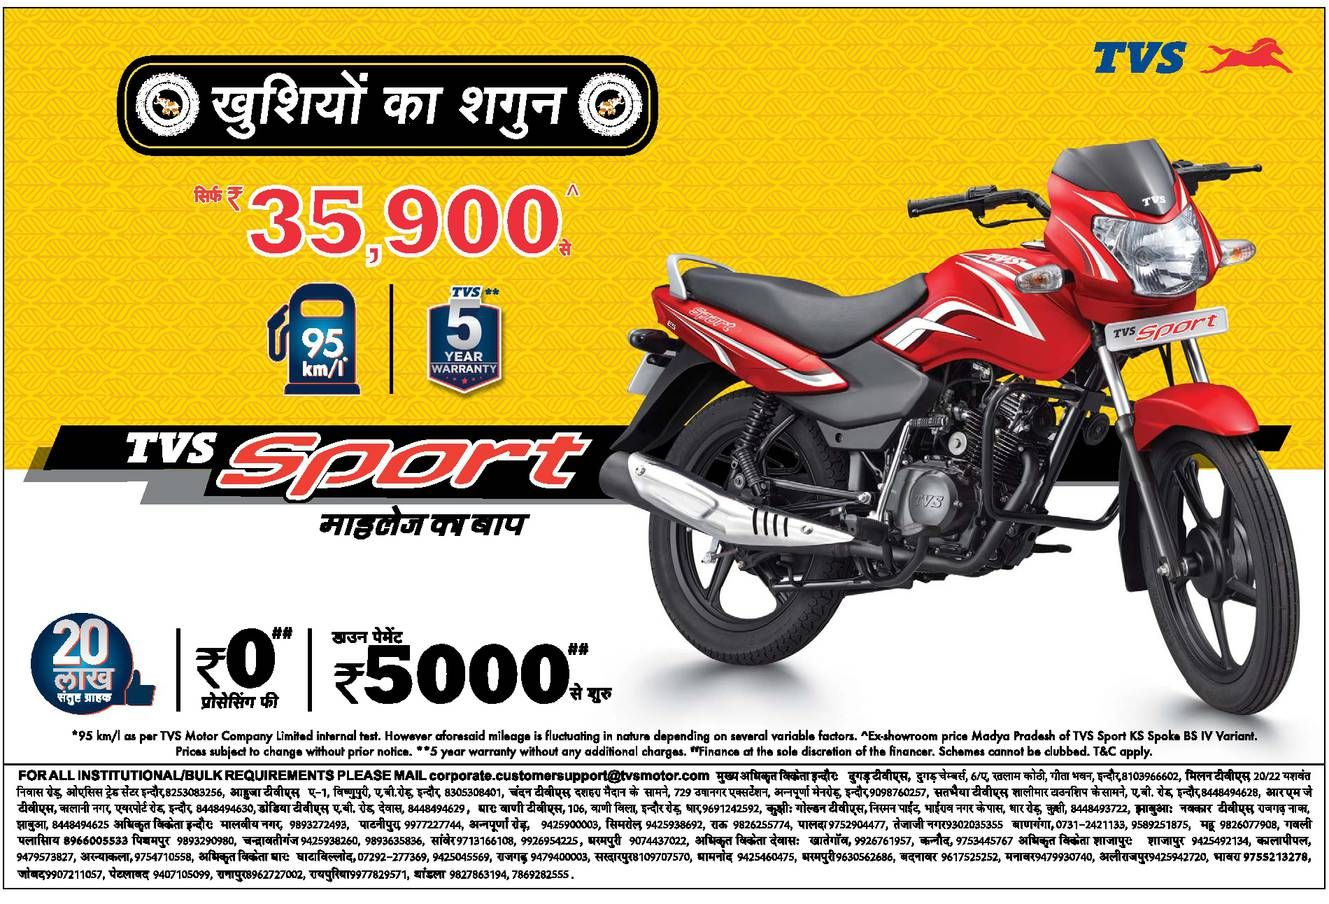 Tvs Sports Best Offer In Indore Shop Tvs Sports At 35 900 Only